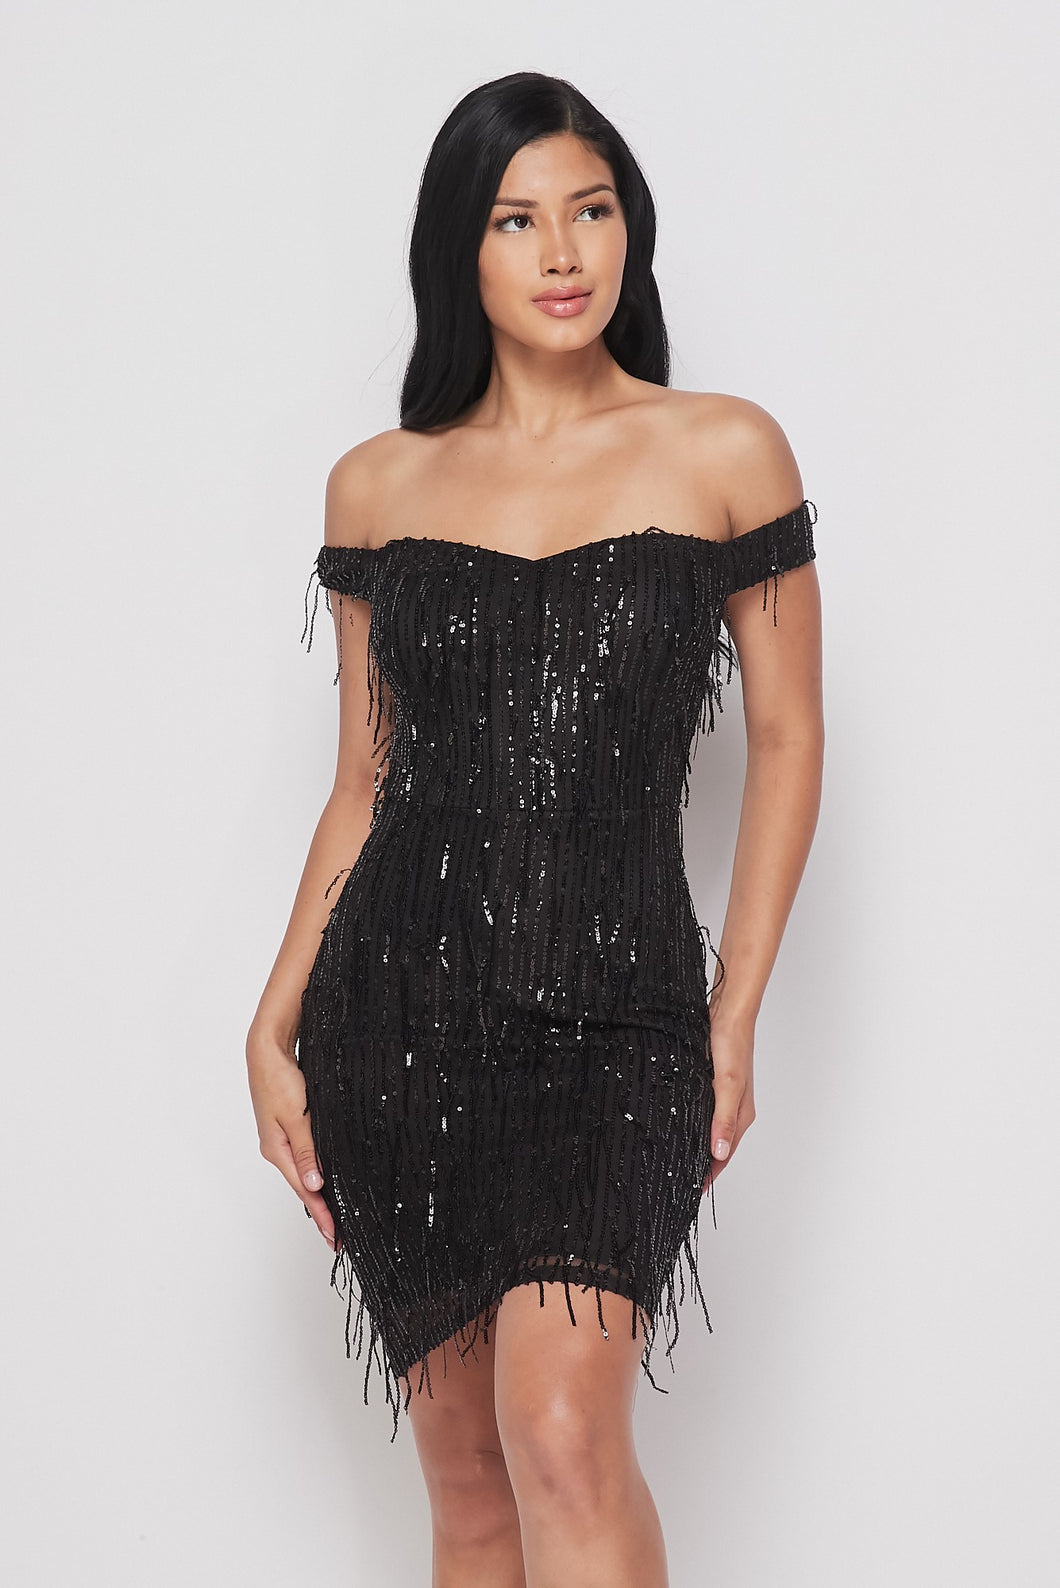 Evening To Remember Dress (Black)